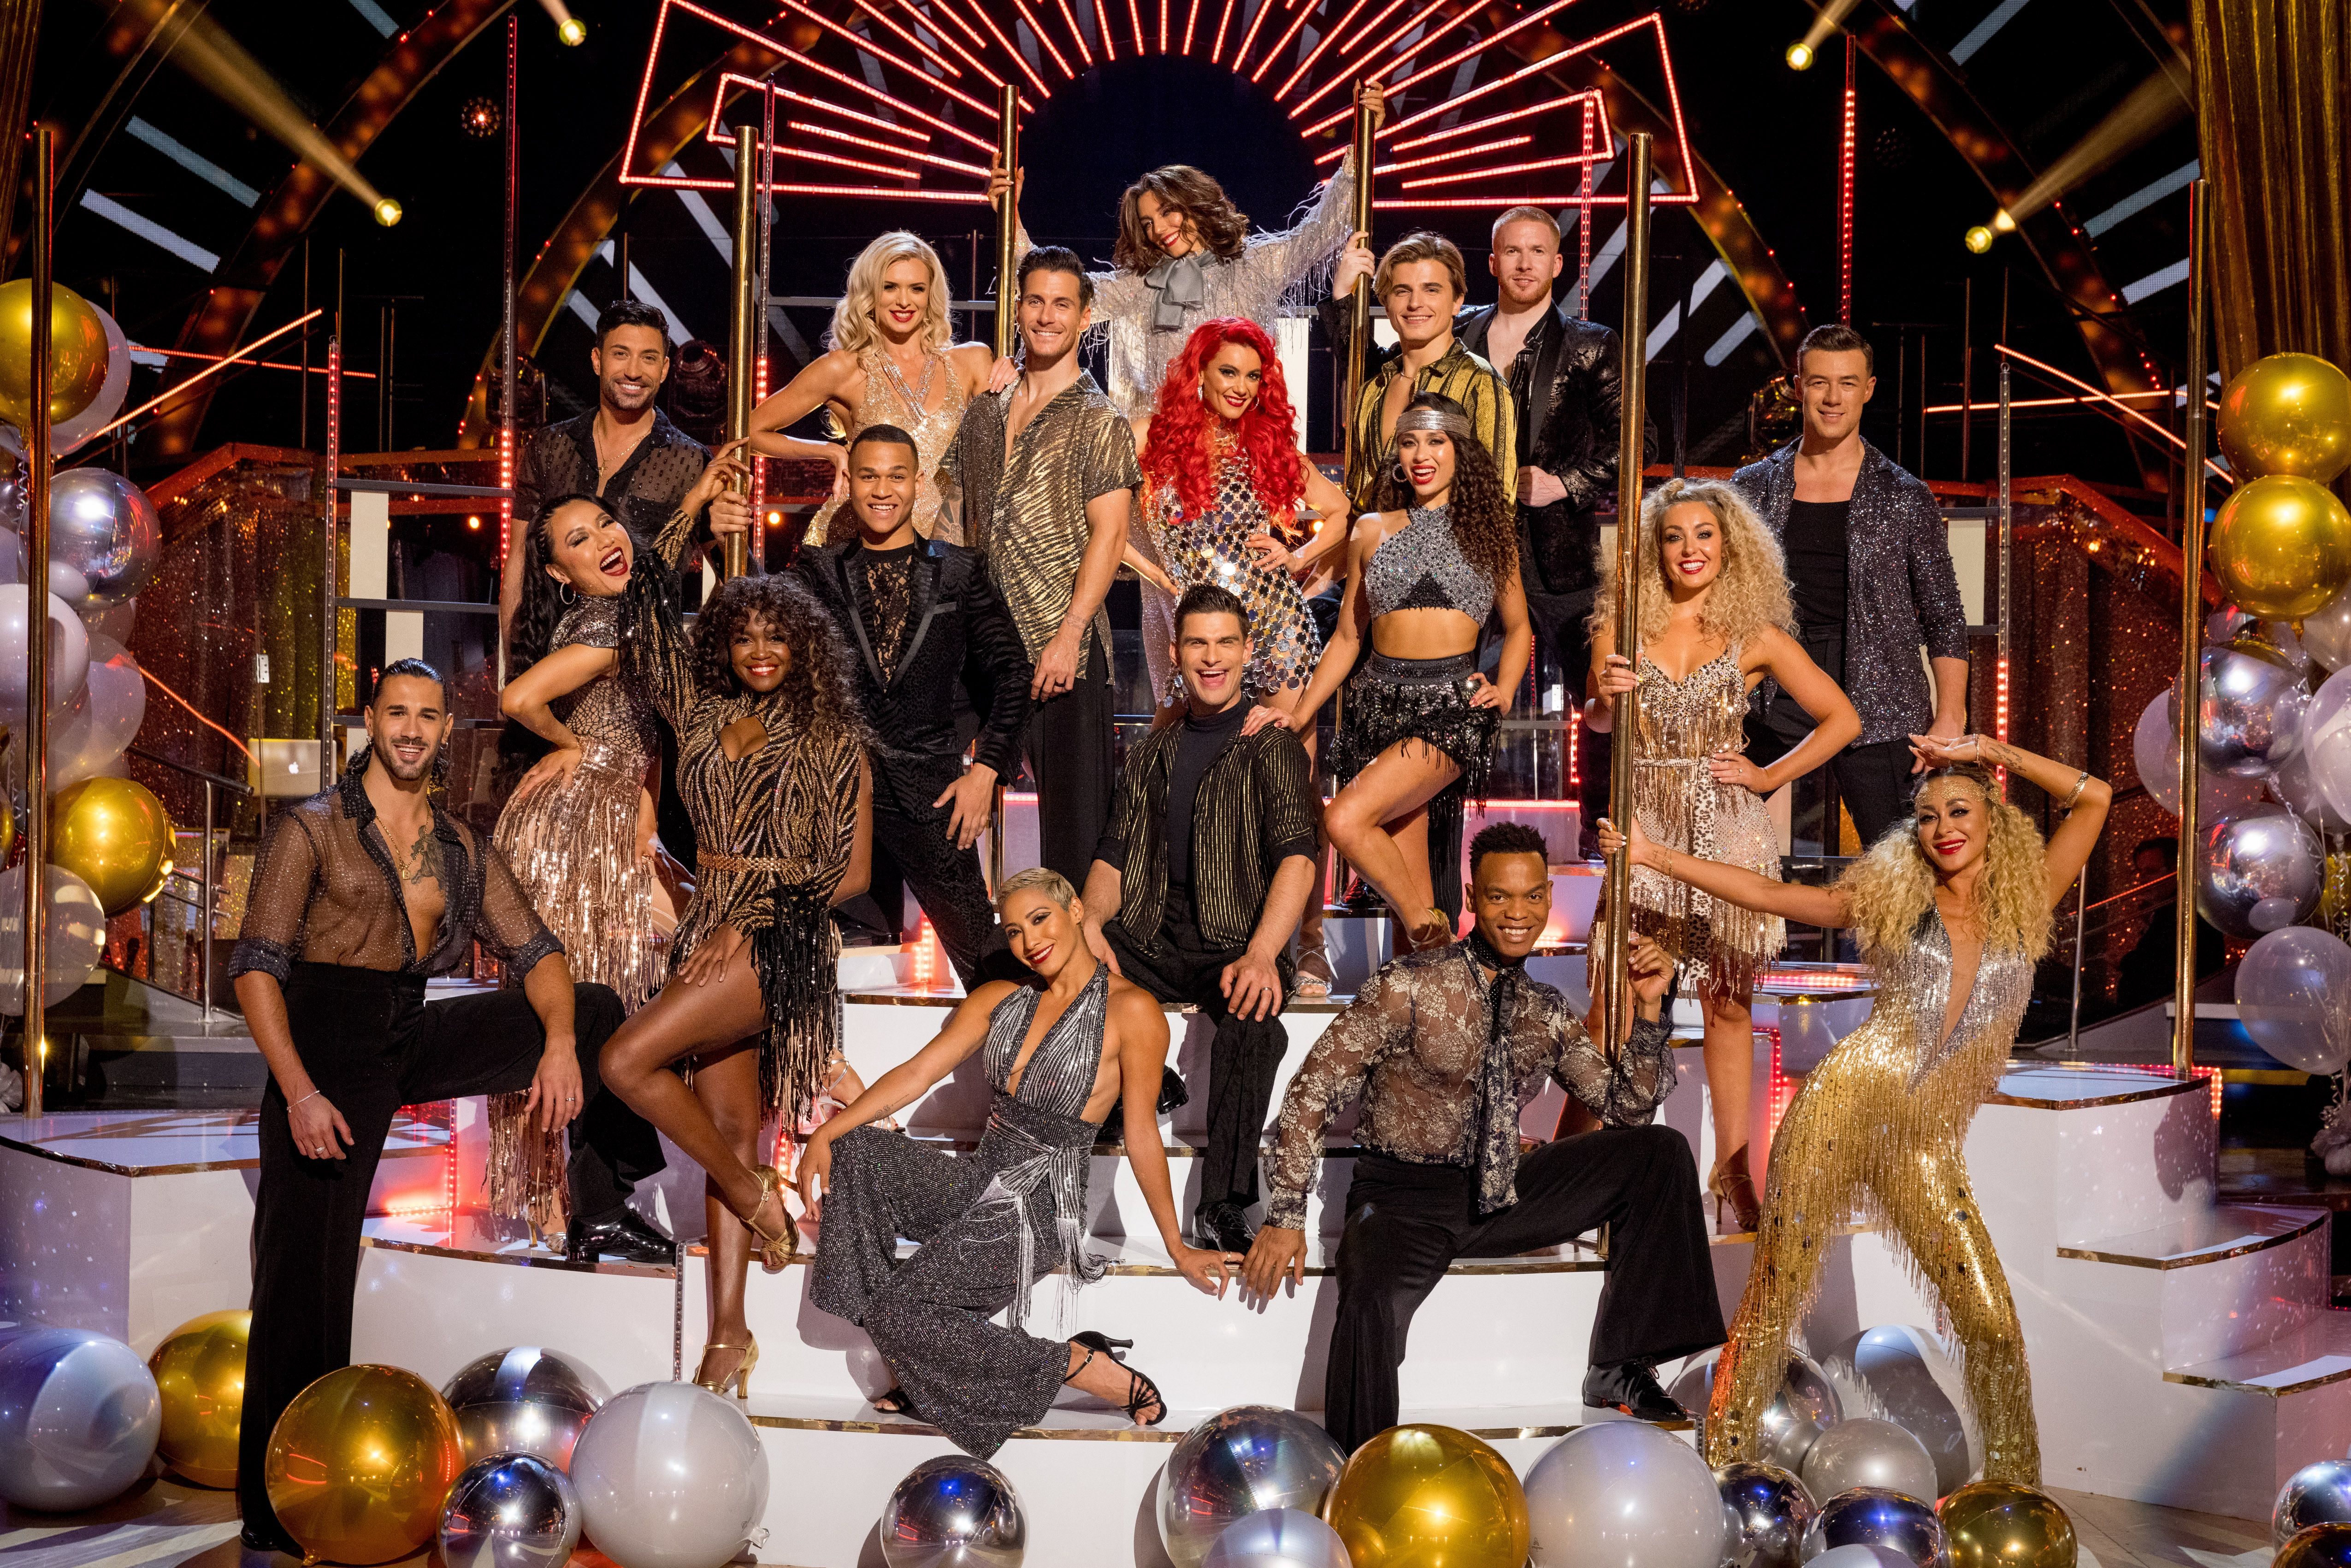 Strictly Come Dancing Hits Major Bump In The Road As Pro Dancer Tests Positive For Covid